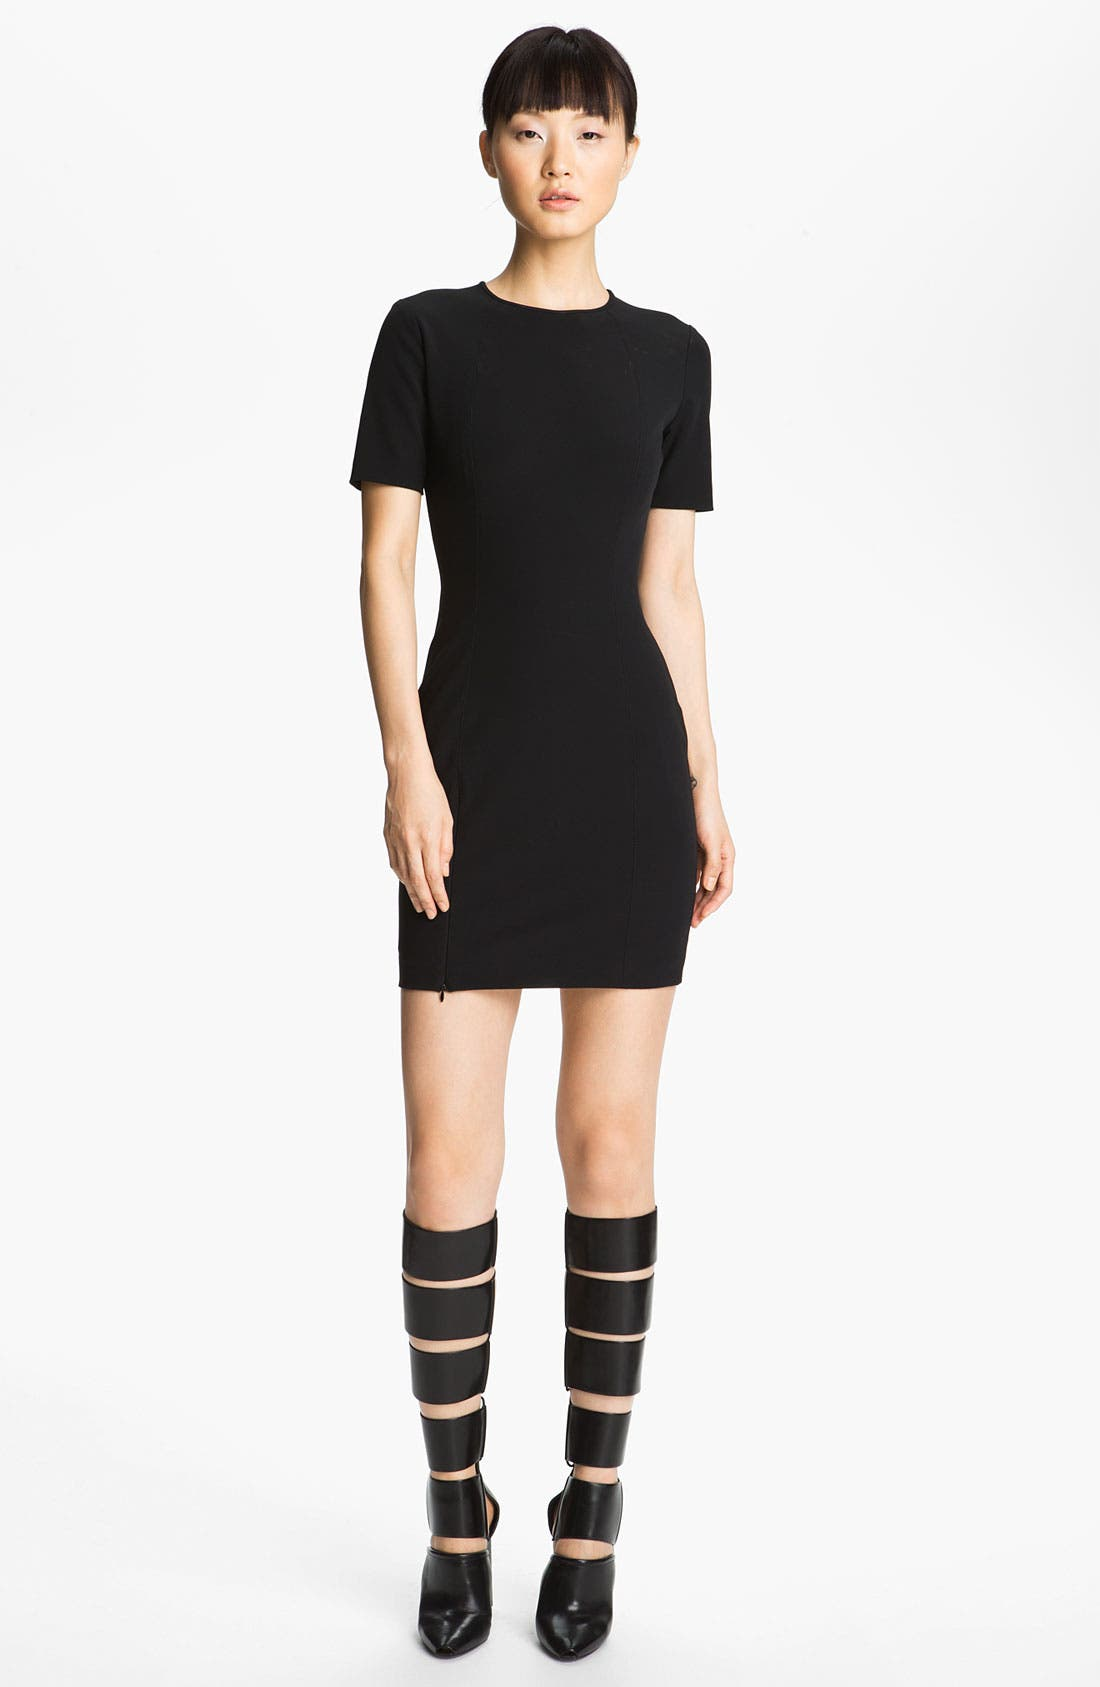 Alternate Image 1 Selected - T by Alexander Wang Fitted Tech Dress